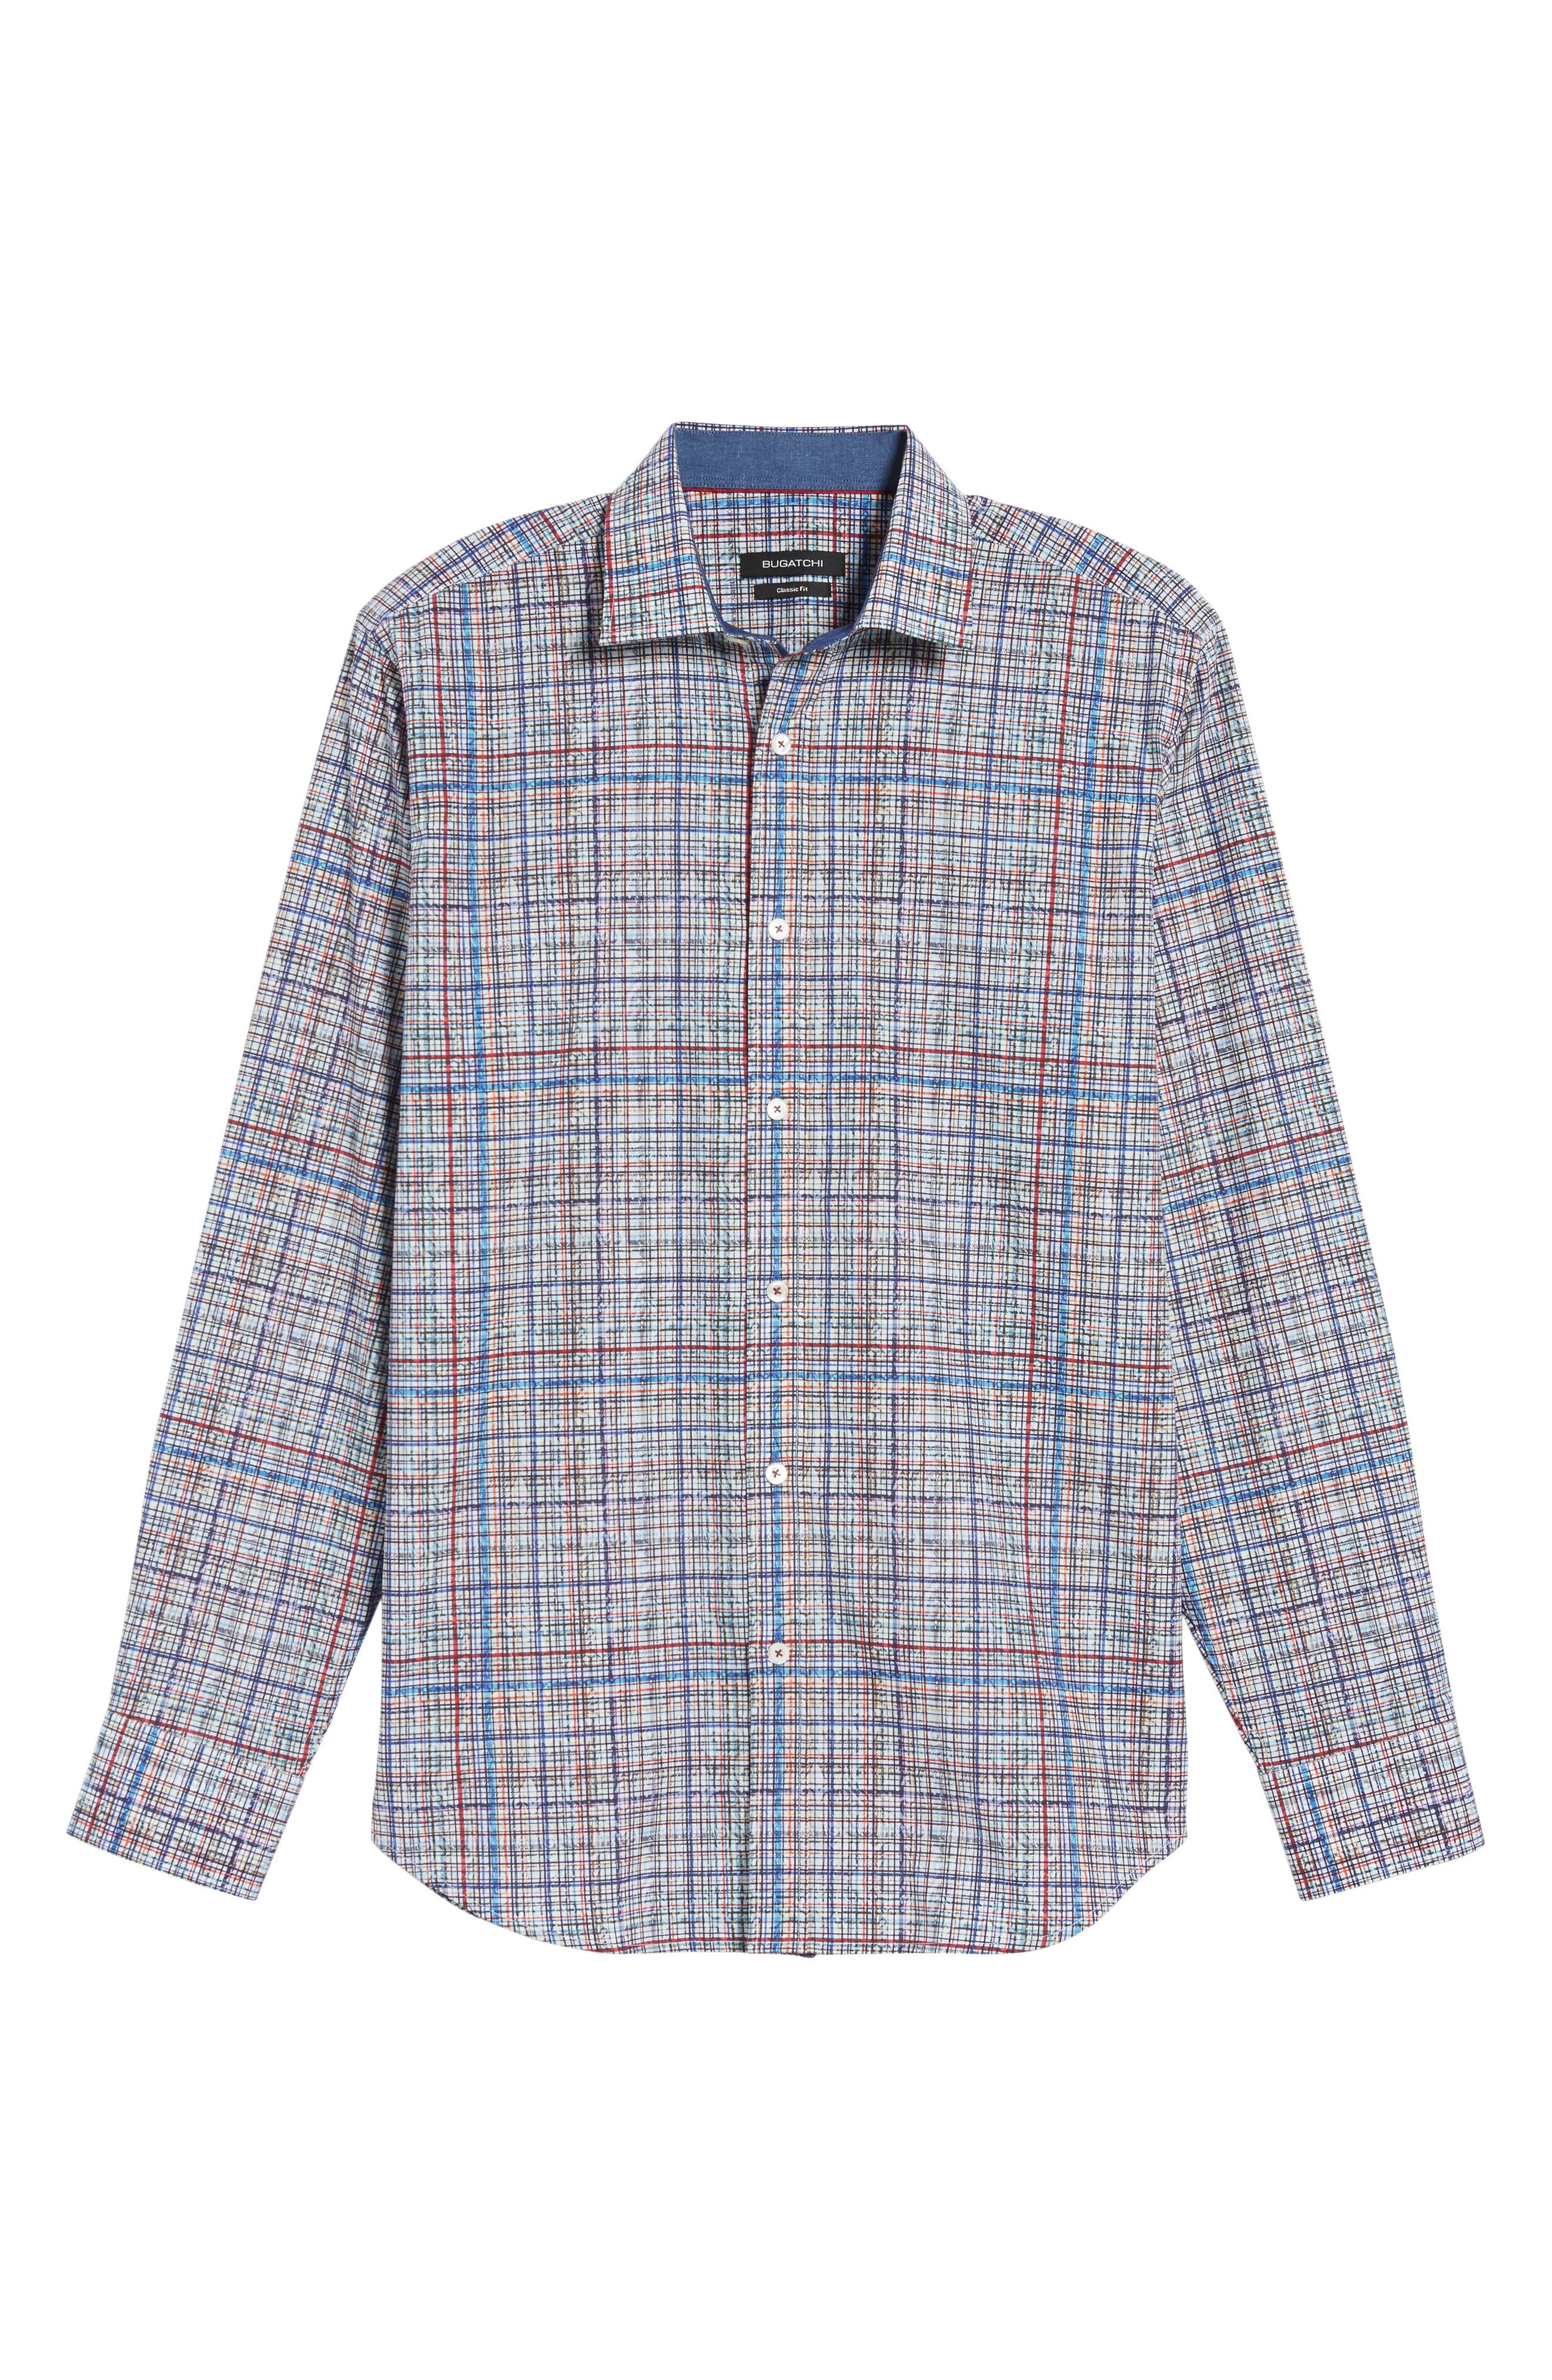 Classic Fit Abstract Plaid Sport Shirt,                             Alternate thumbnail 6, color,                             601